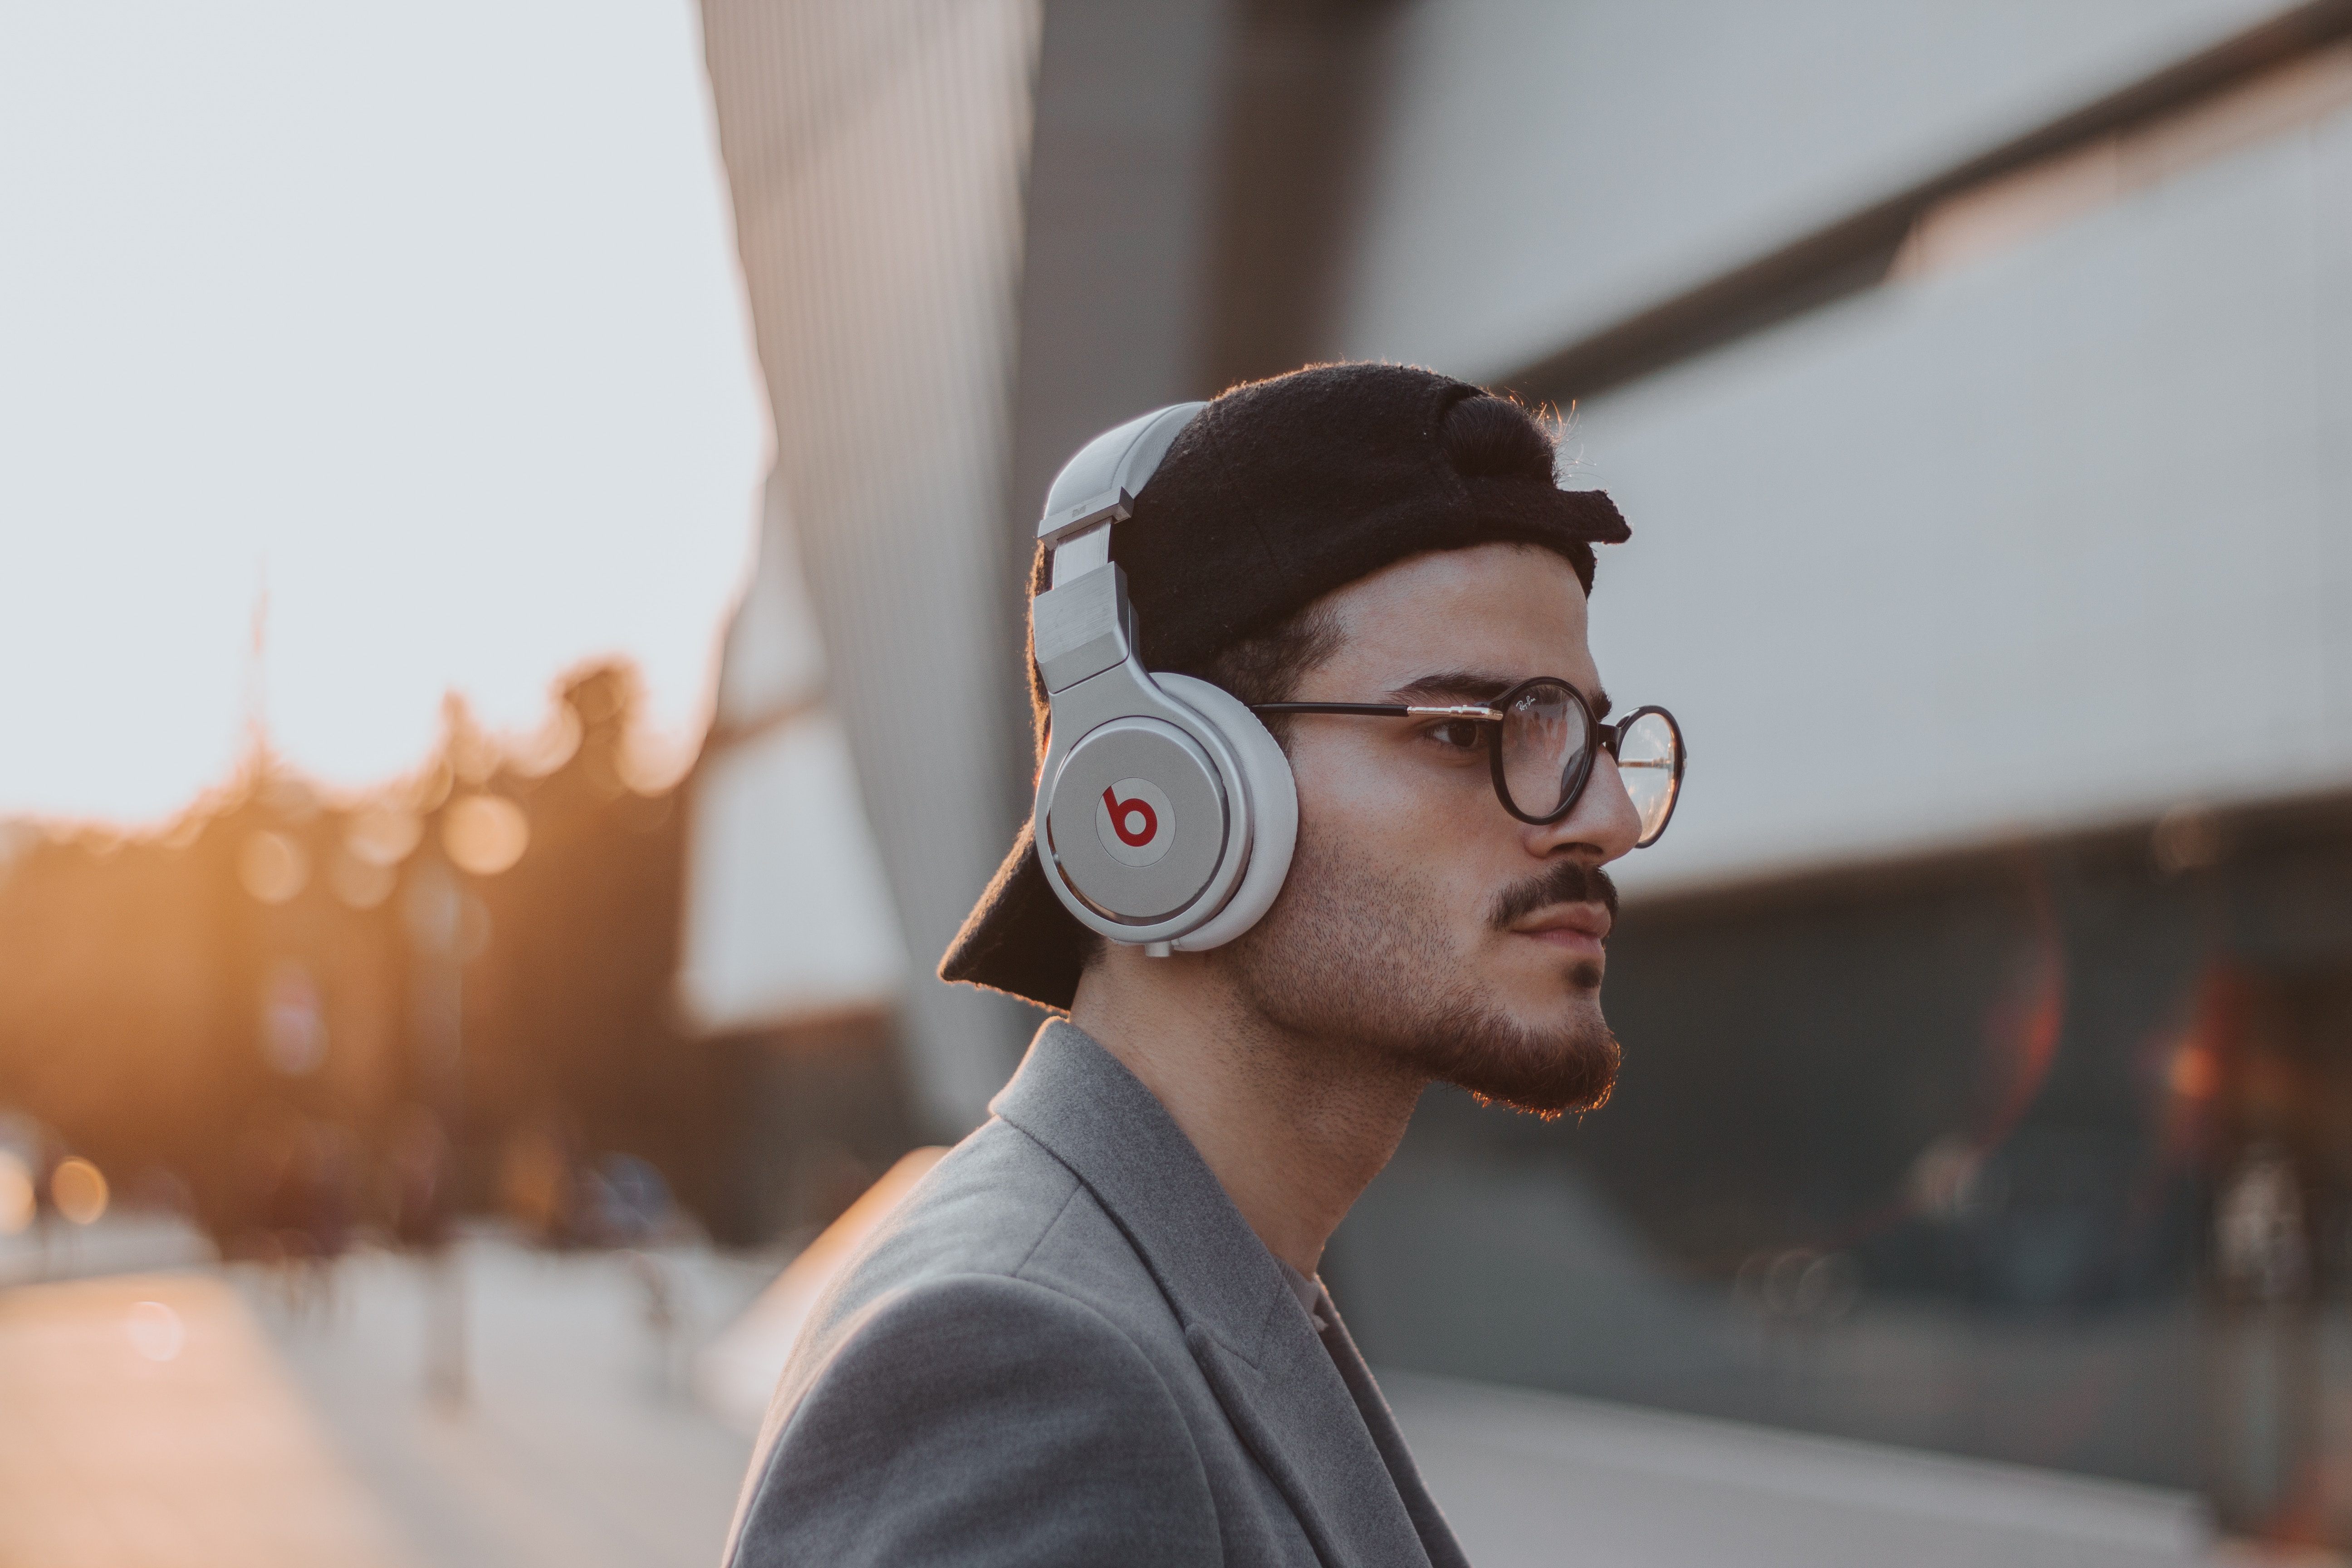 A man with headphones and a baseball cap.